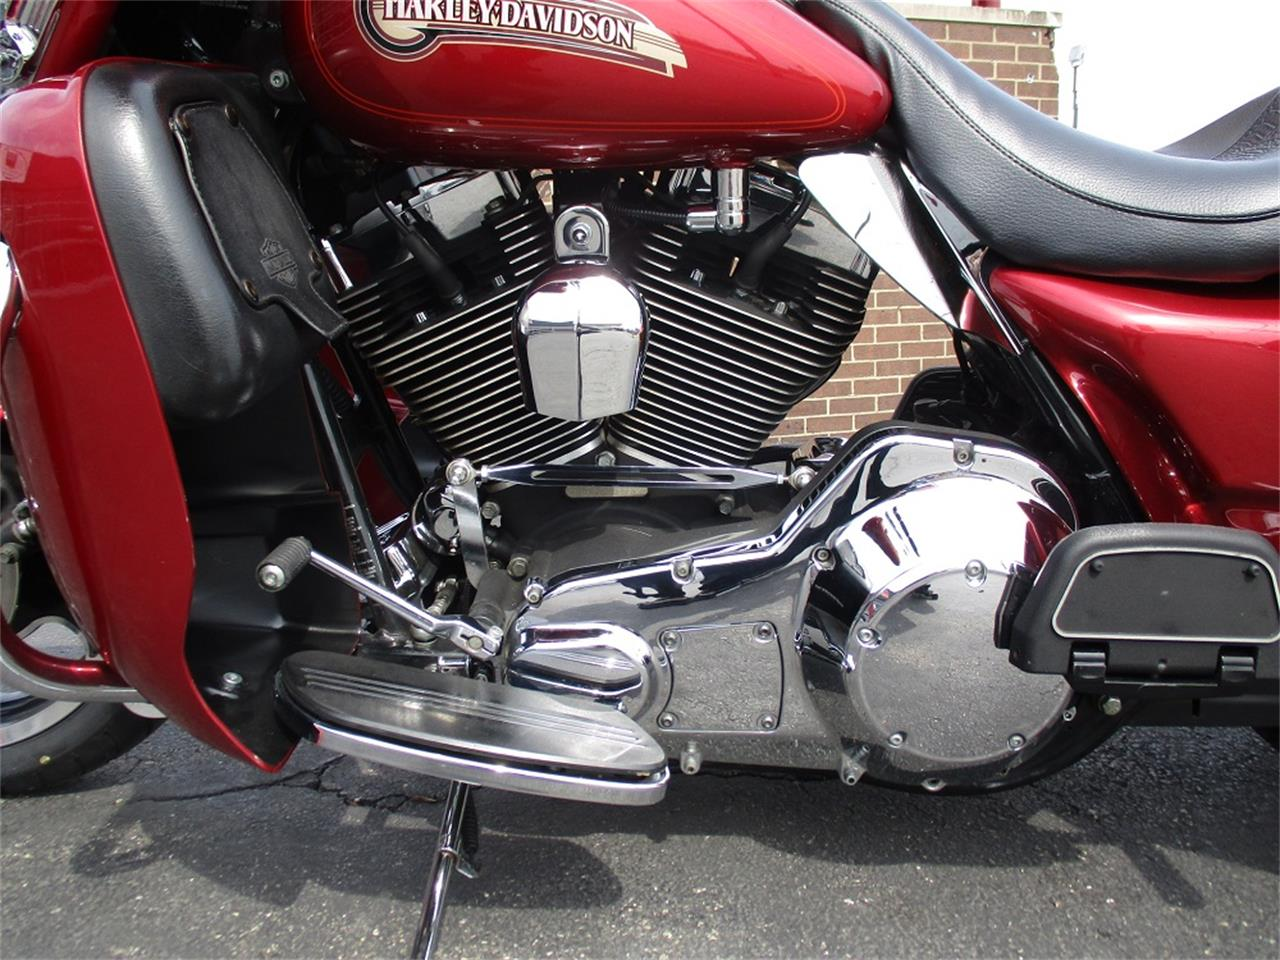 Large Picture of '05 Electra Glide located in Illinois - $9,500.00 - PR89